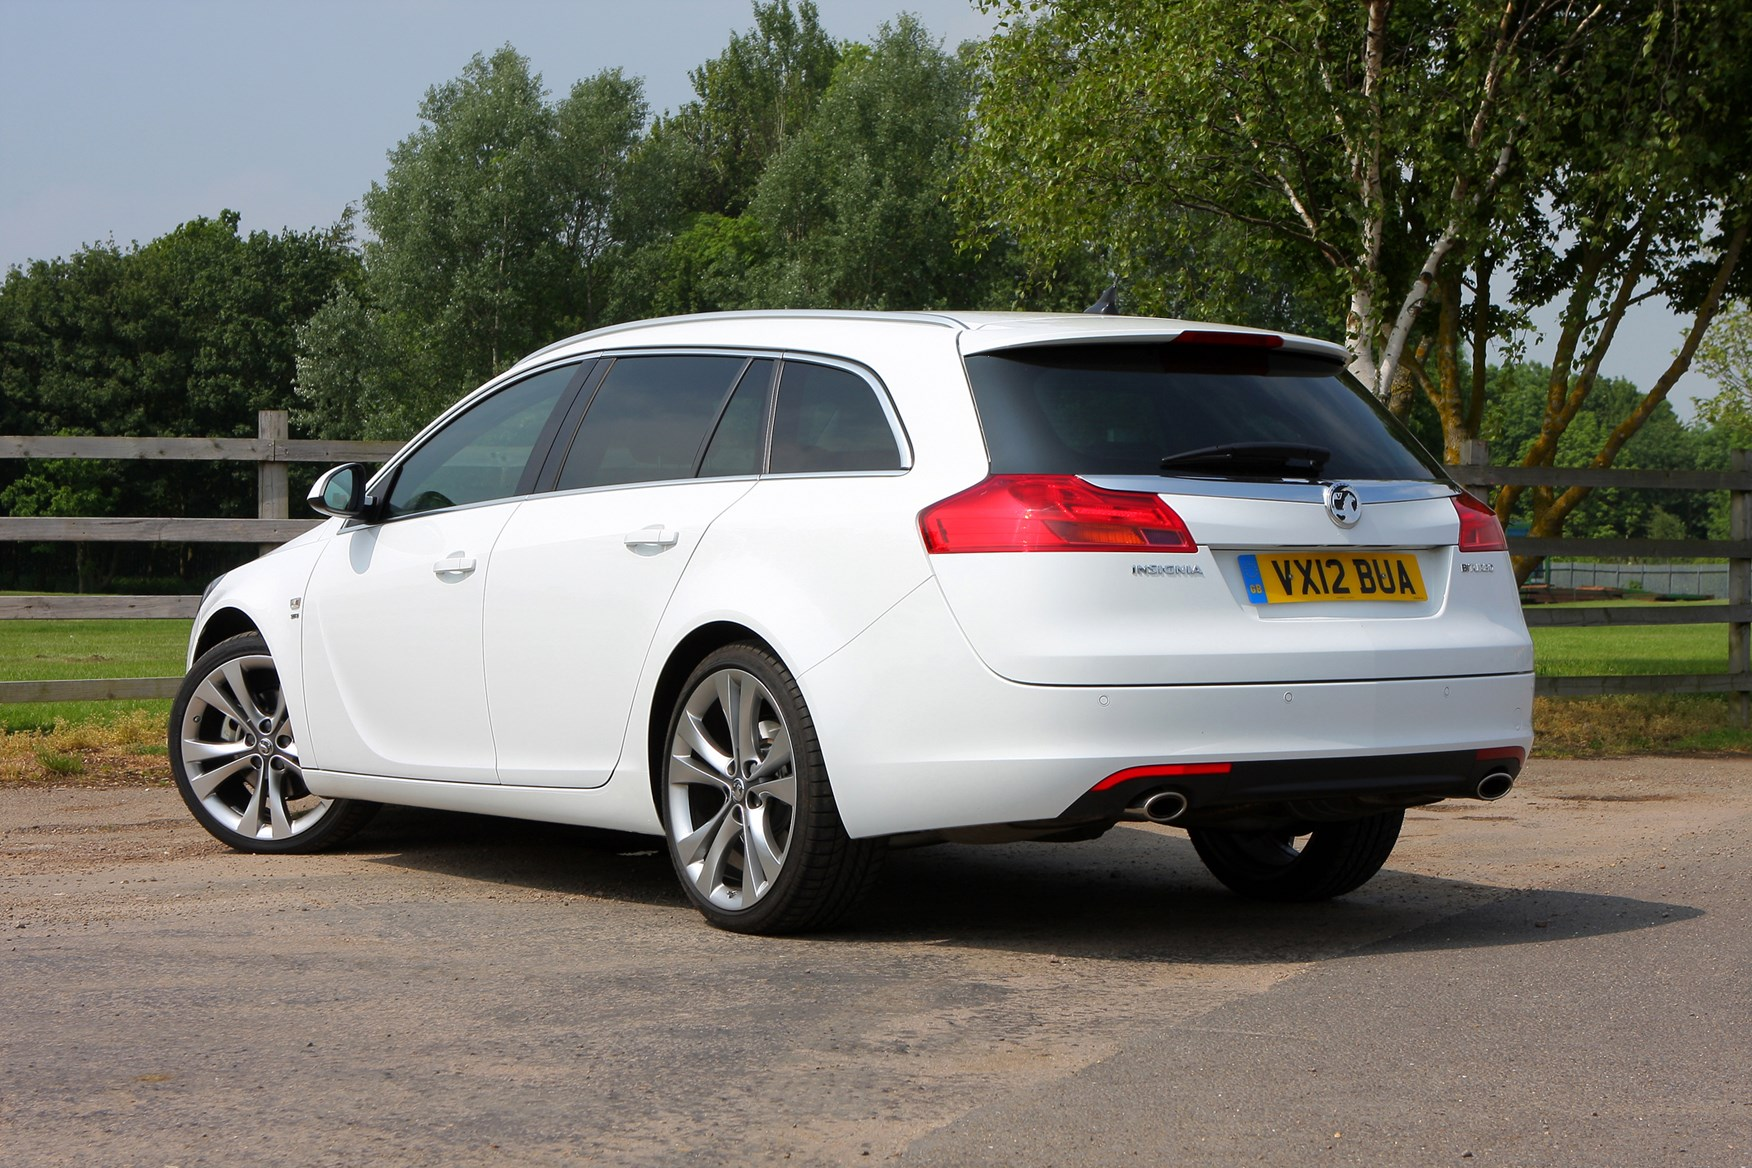 Used Vauxhall Insignia Sports Tourer (2009 - 2017) Review